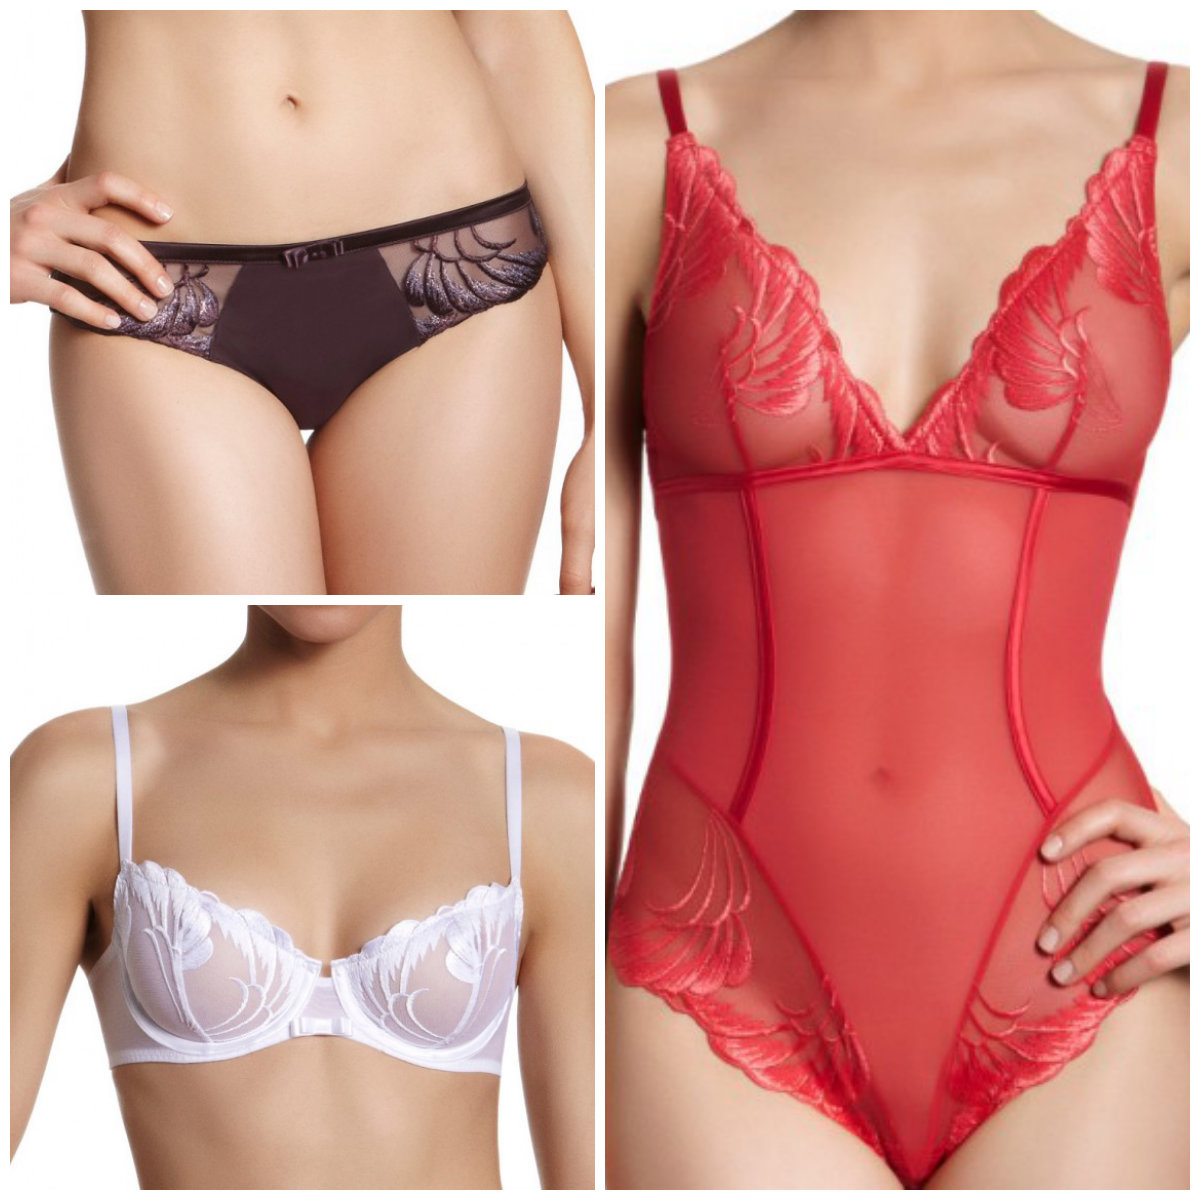 Simone Perele sales - what collections are the best deal?